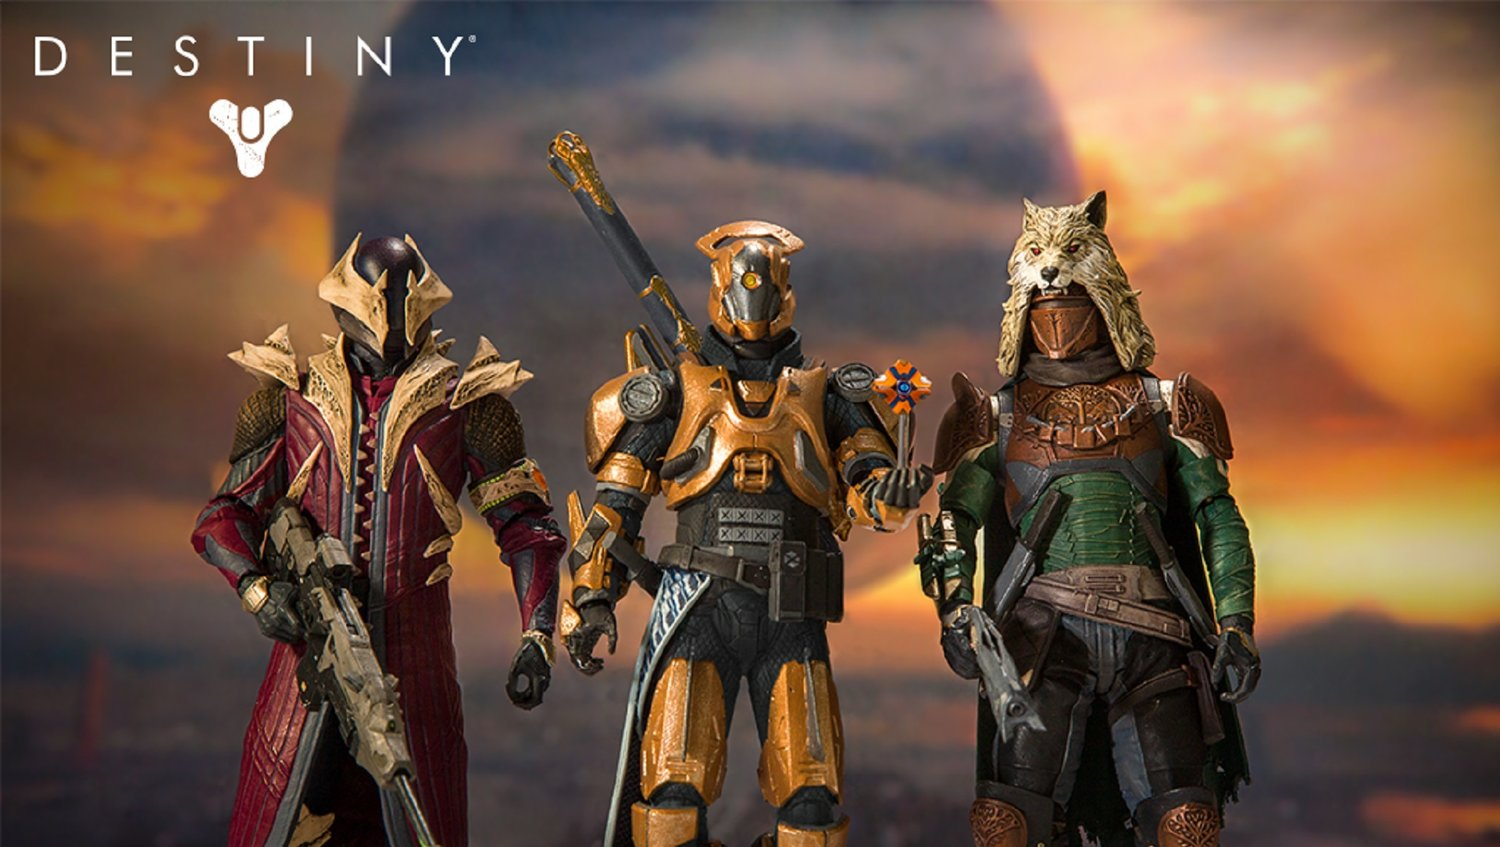 3dd4299de01 McFarlane Toys and Bungie are teaming up to bring the world some bad ass  (and cheap) Destiny action figures. Below you can see the Titan